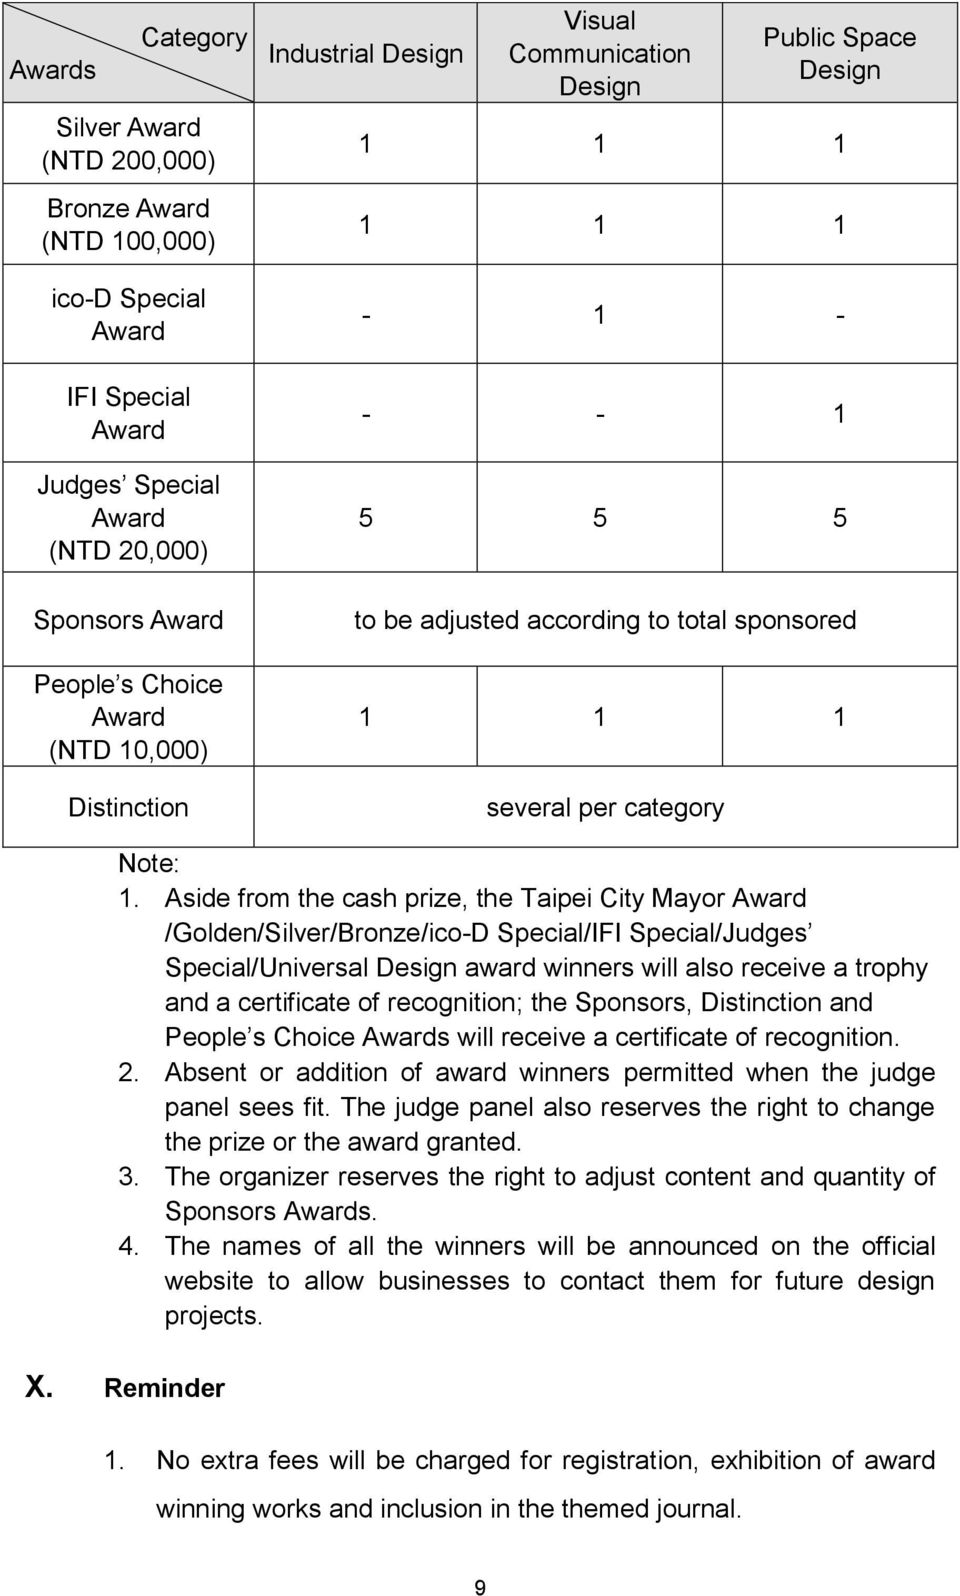 Aside from the cash prize, the Taipei City Mayor Award /Golden/Silver/Bronze/ico-D Special/IFI Special/Judges Special/Universal award winners will also receive a trophy and a certificate of